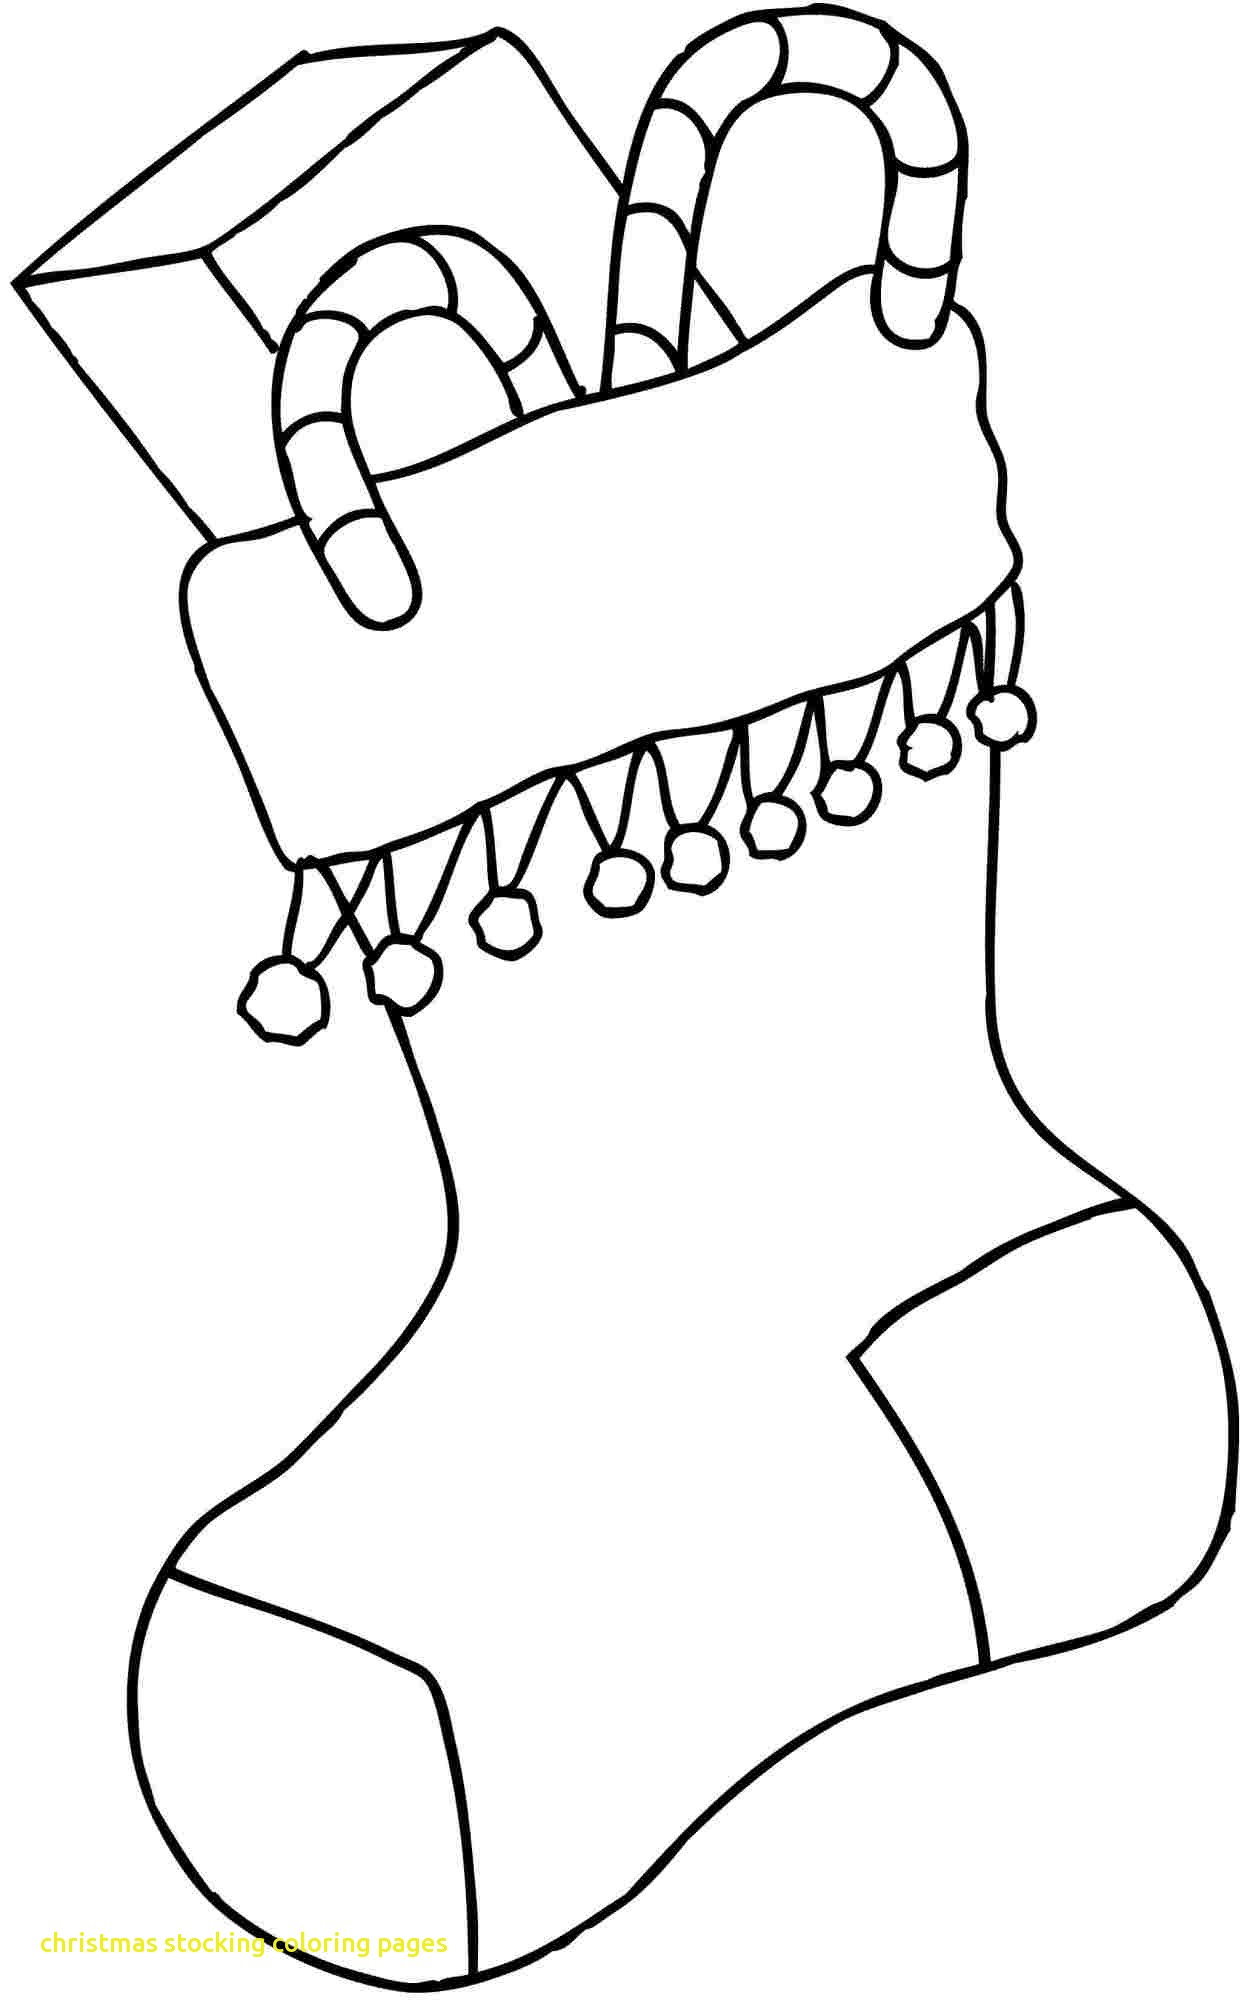 Free Christmas Stocking Coloring Pages At Getcolorings